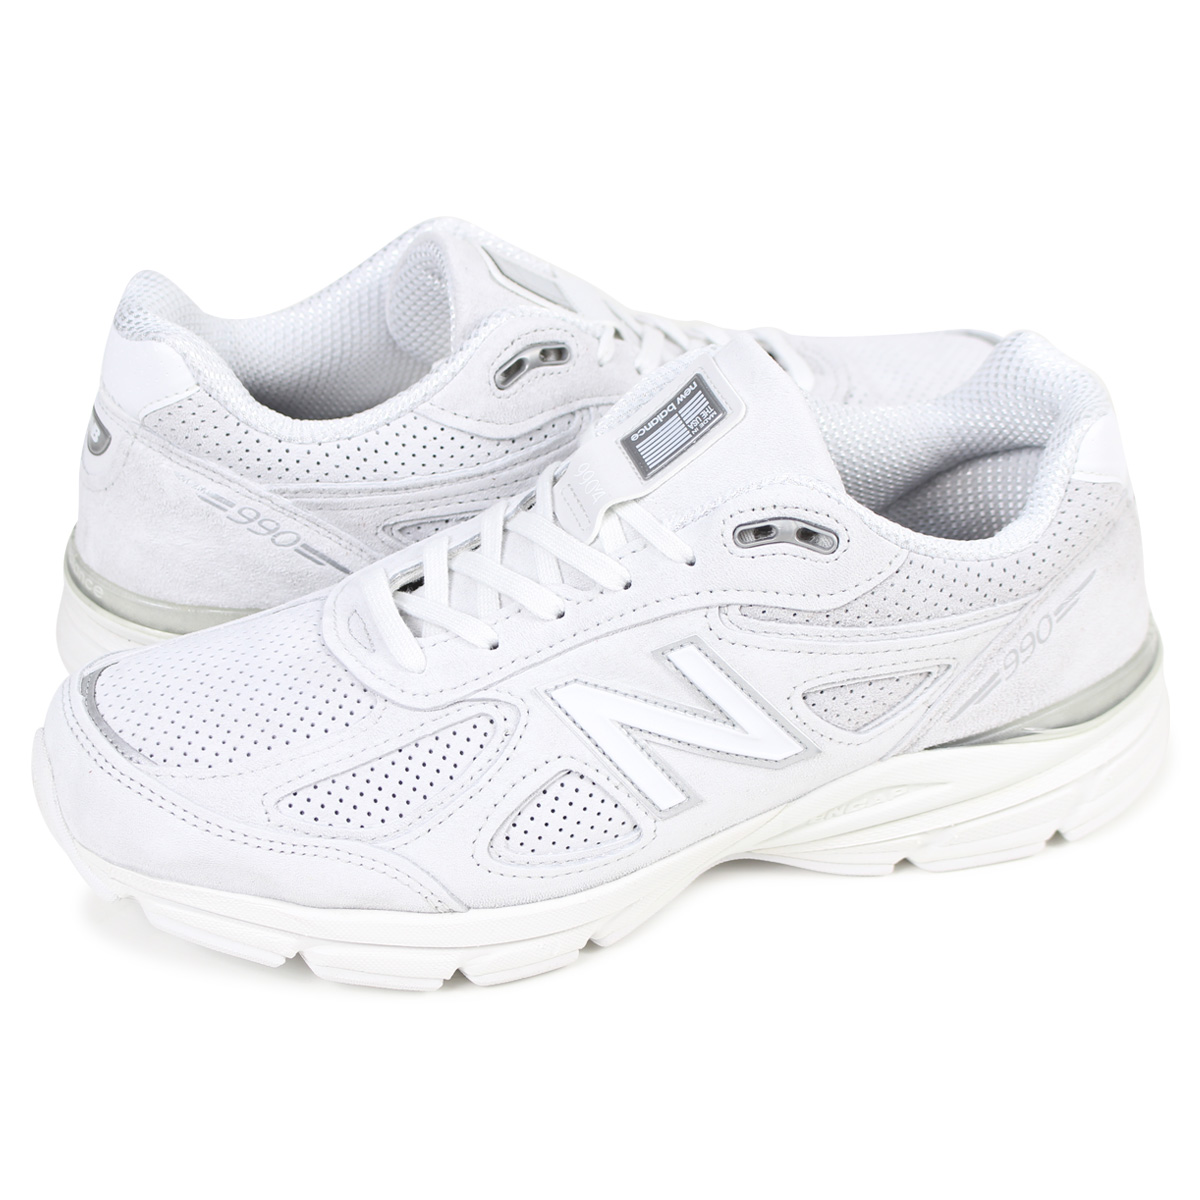 buy popular 3a3d8 127a0 new balance 990 New Balance sneakers men D Wise MADE IN USA gray M990AF4